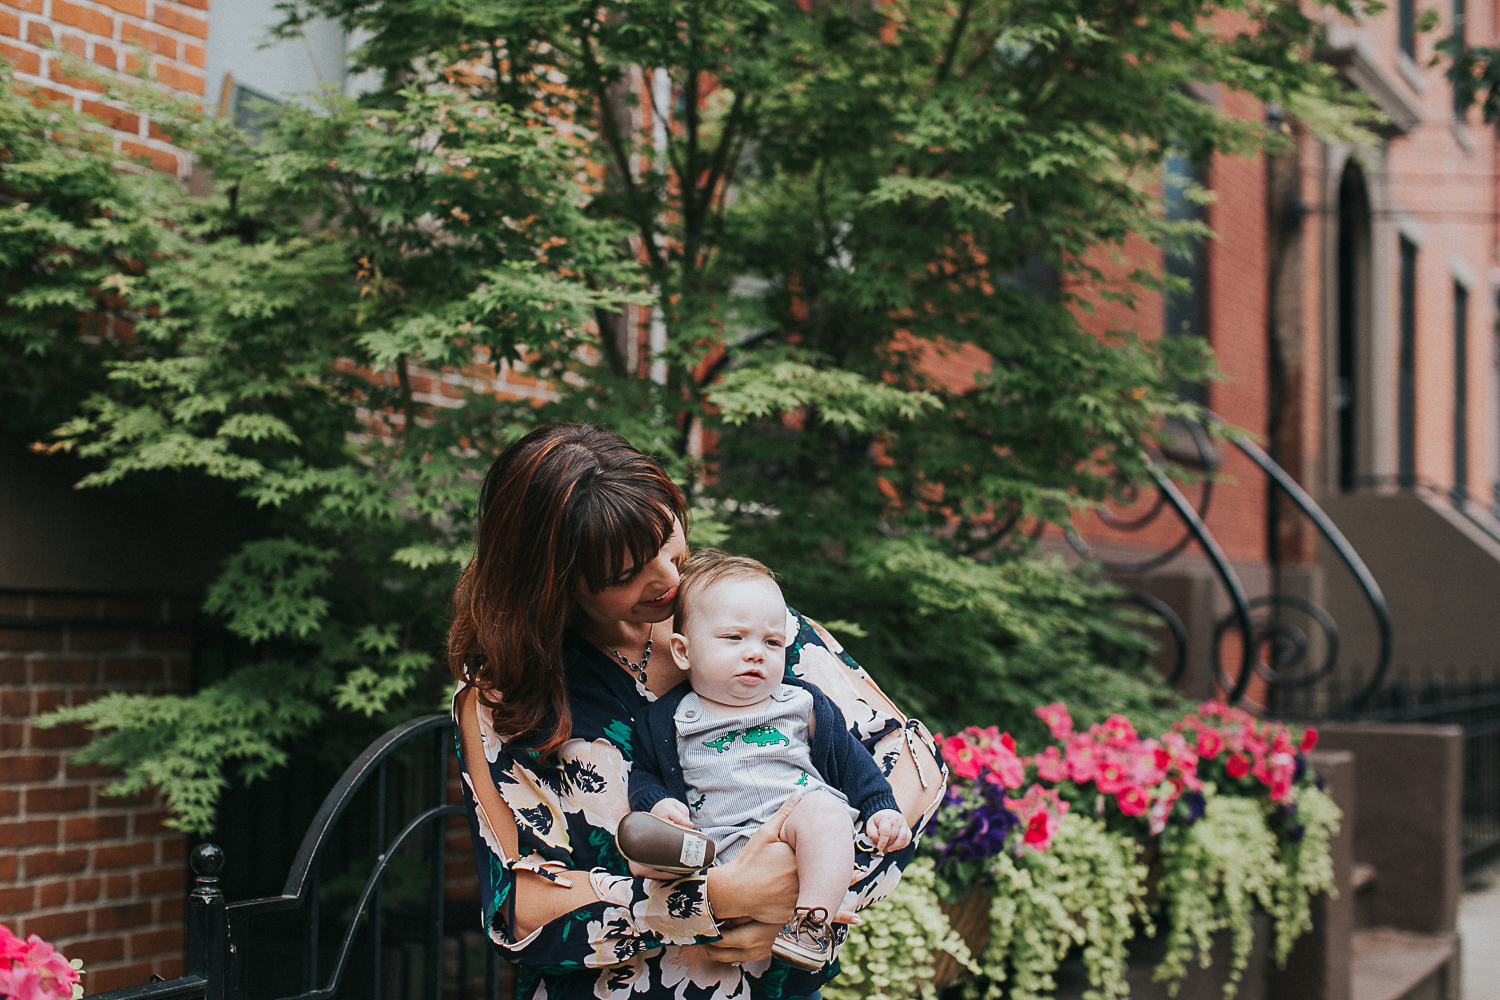 harry potter themed Fun and Casual Jersey City Family portraits